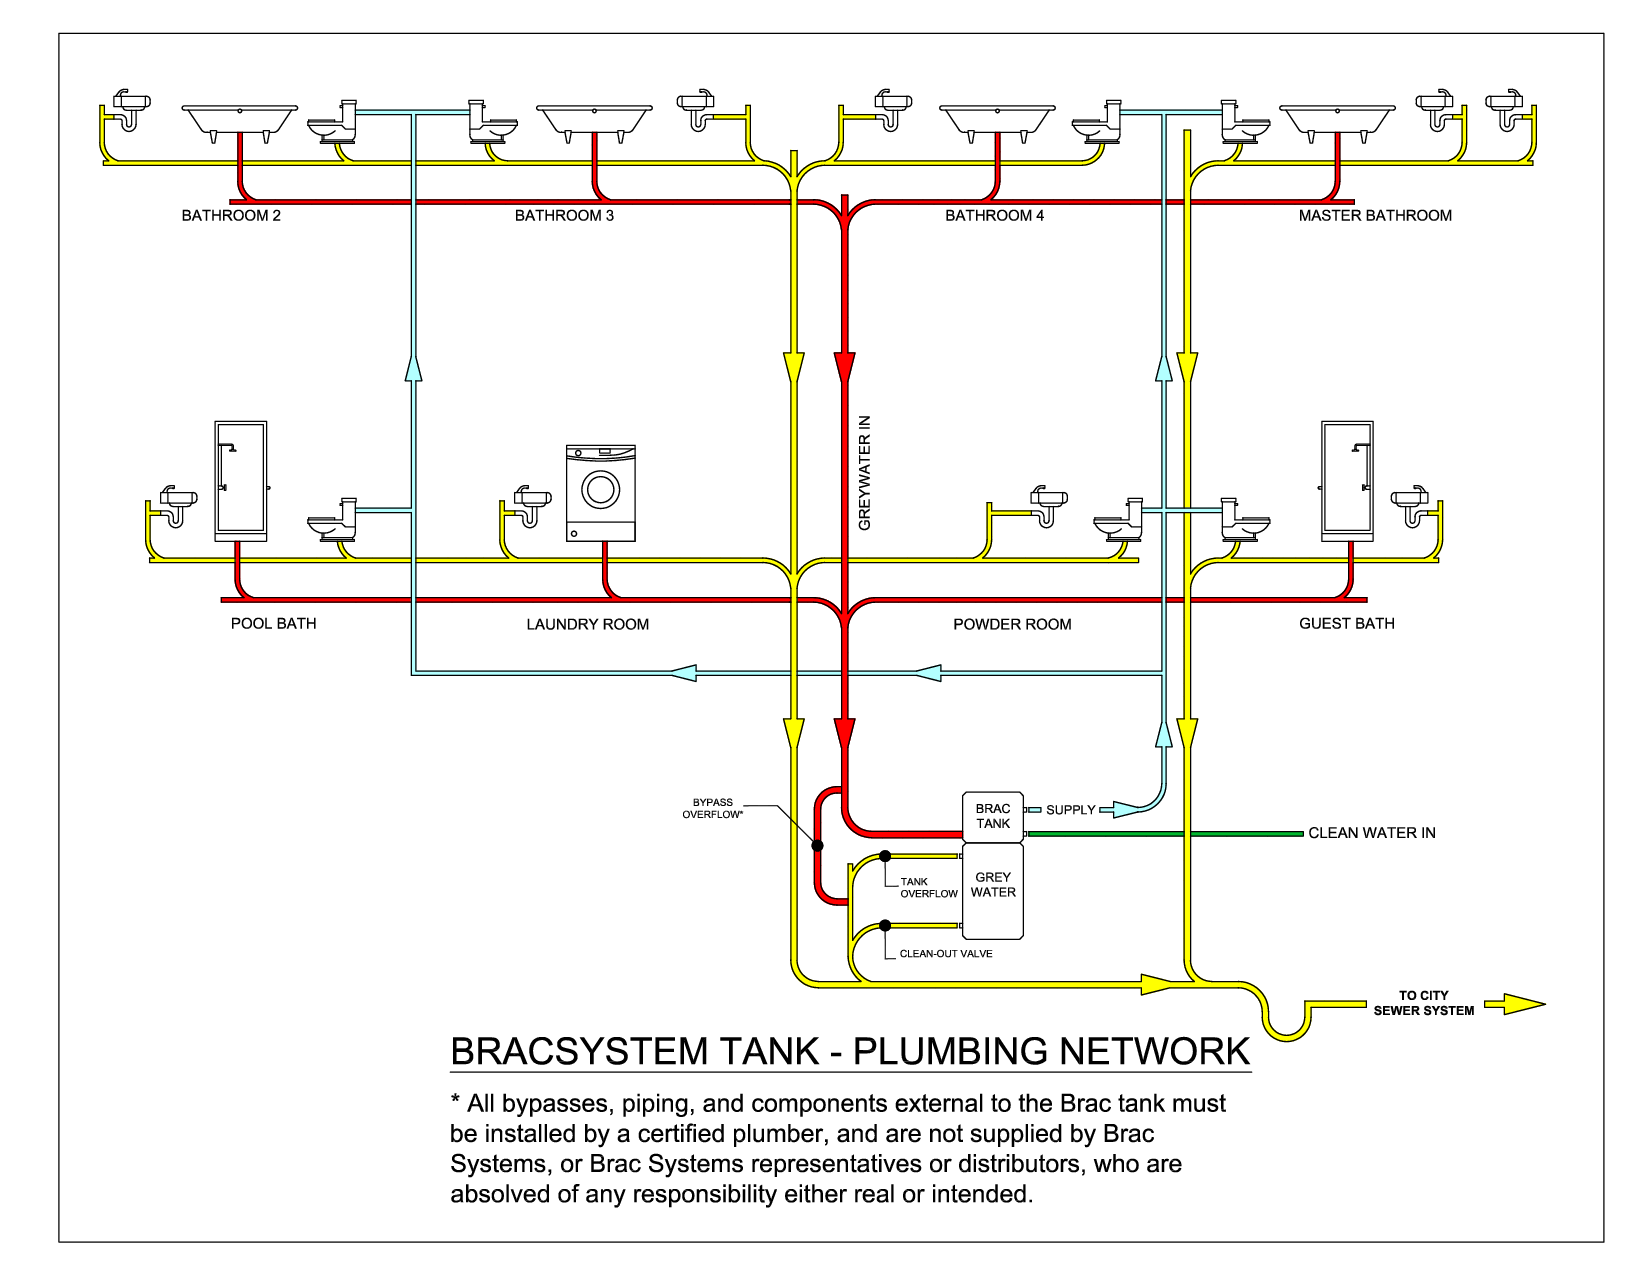 mobile home plumbing systems plumbing network diagram pdf [ 1650 x 1275 Pixel ]